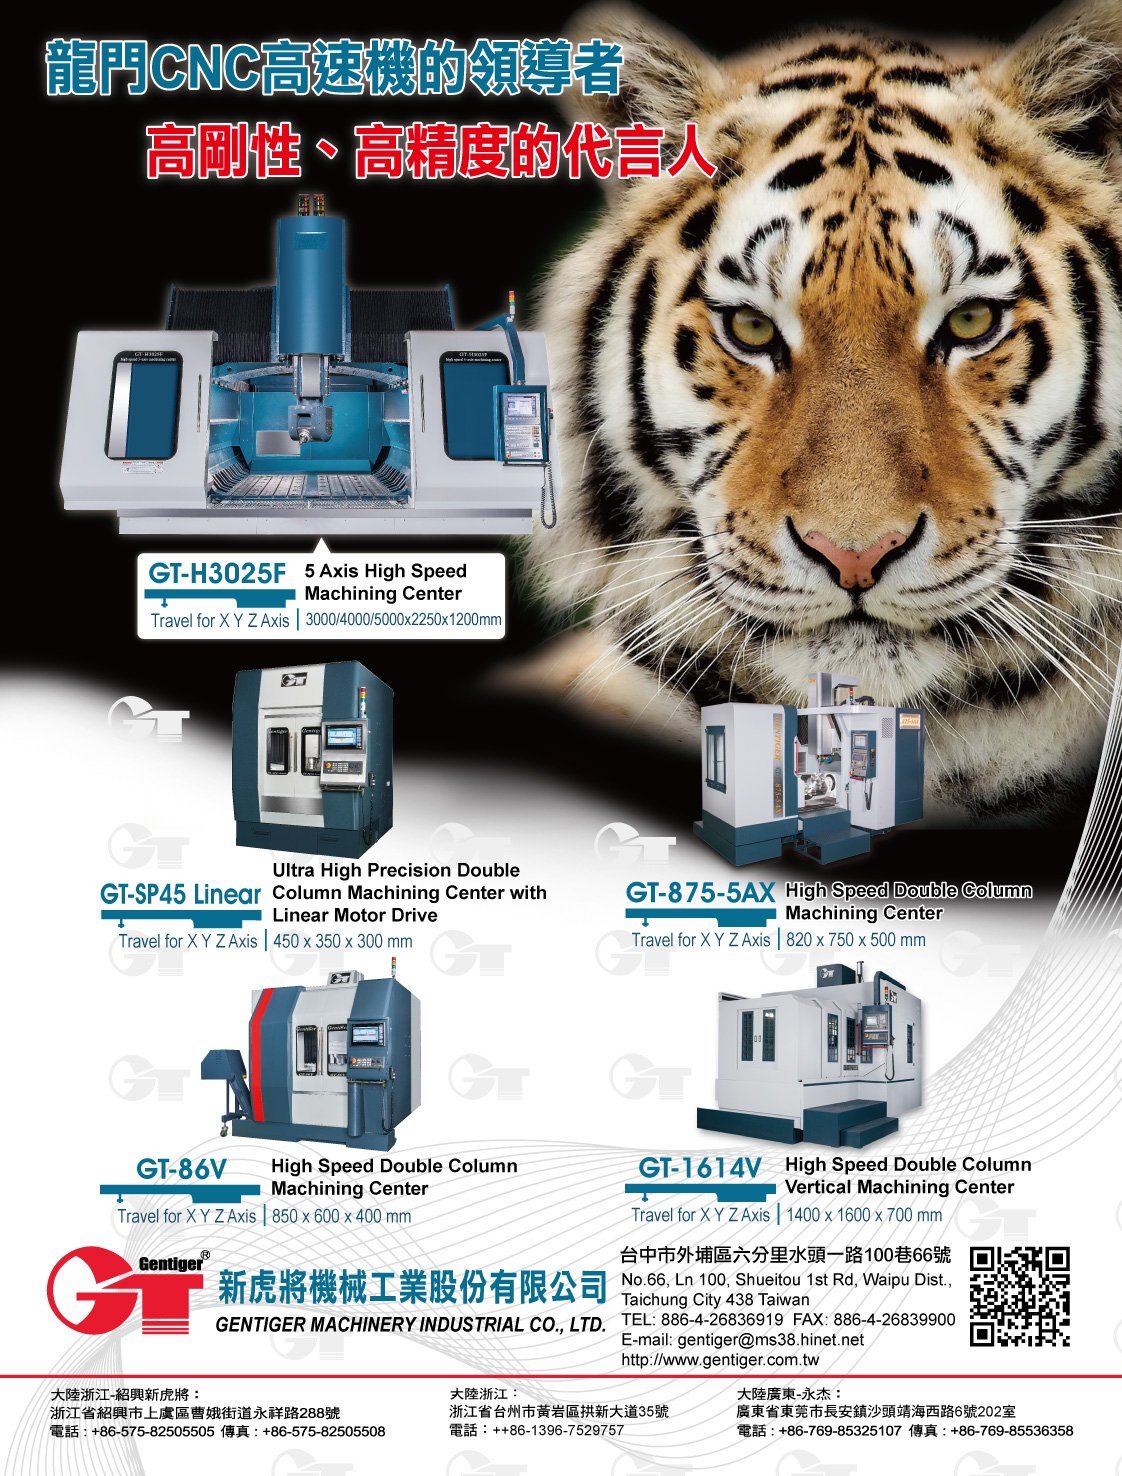 GENTIGER MACHINERY INDUSTRIAL CO., LTD.